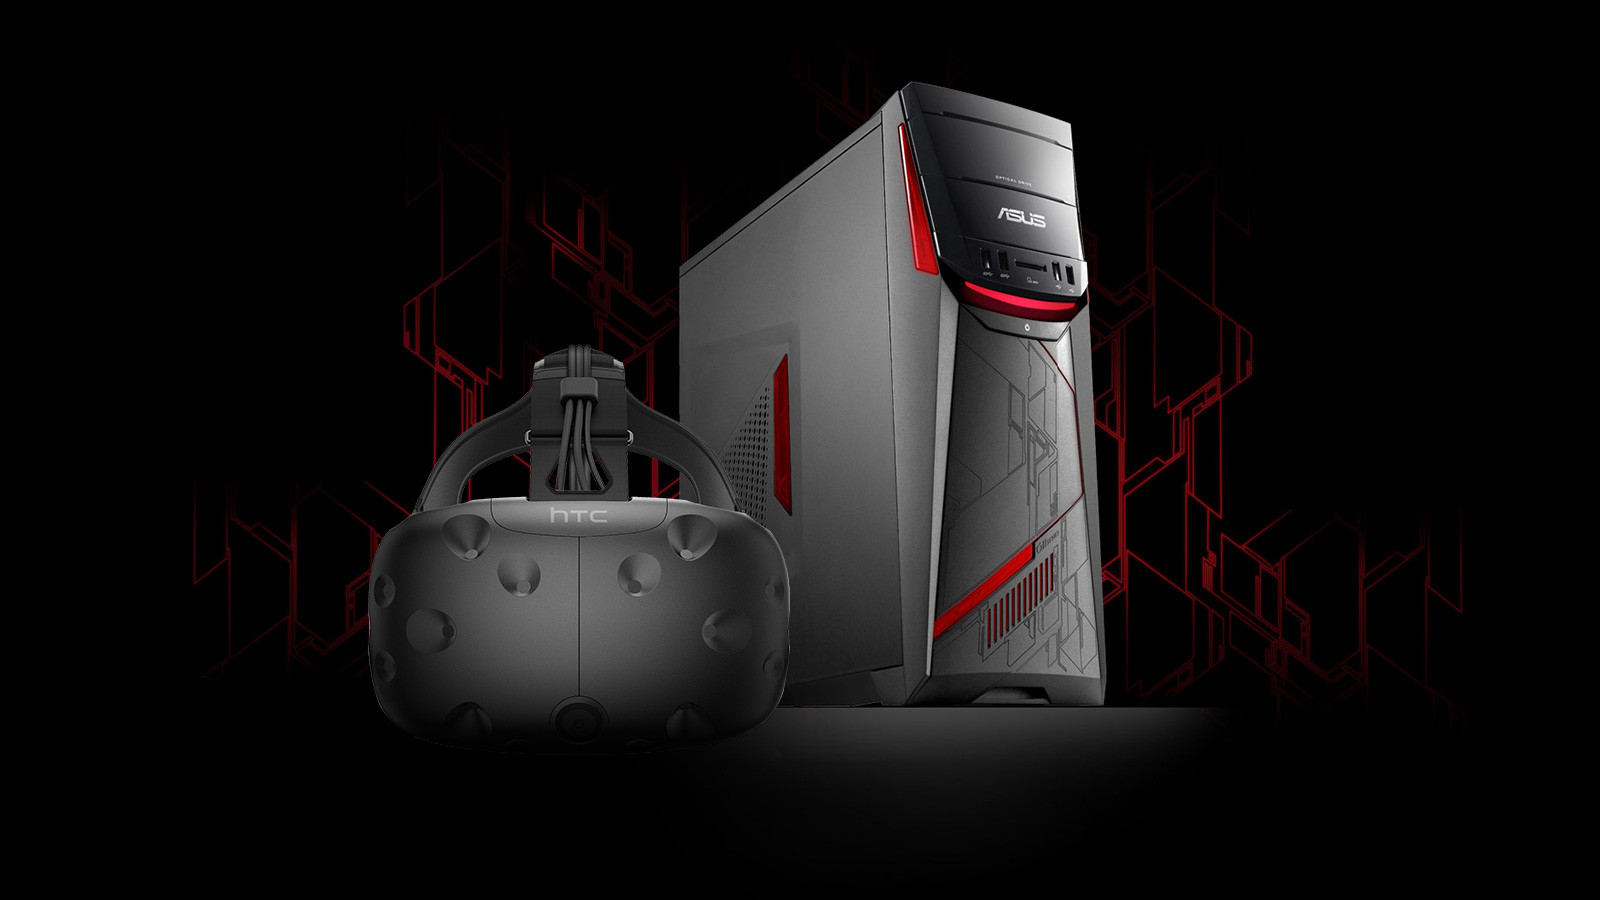 Enter To Win An HTC Vive And ASUS Gaming Desktop From VRHeads